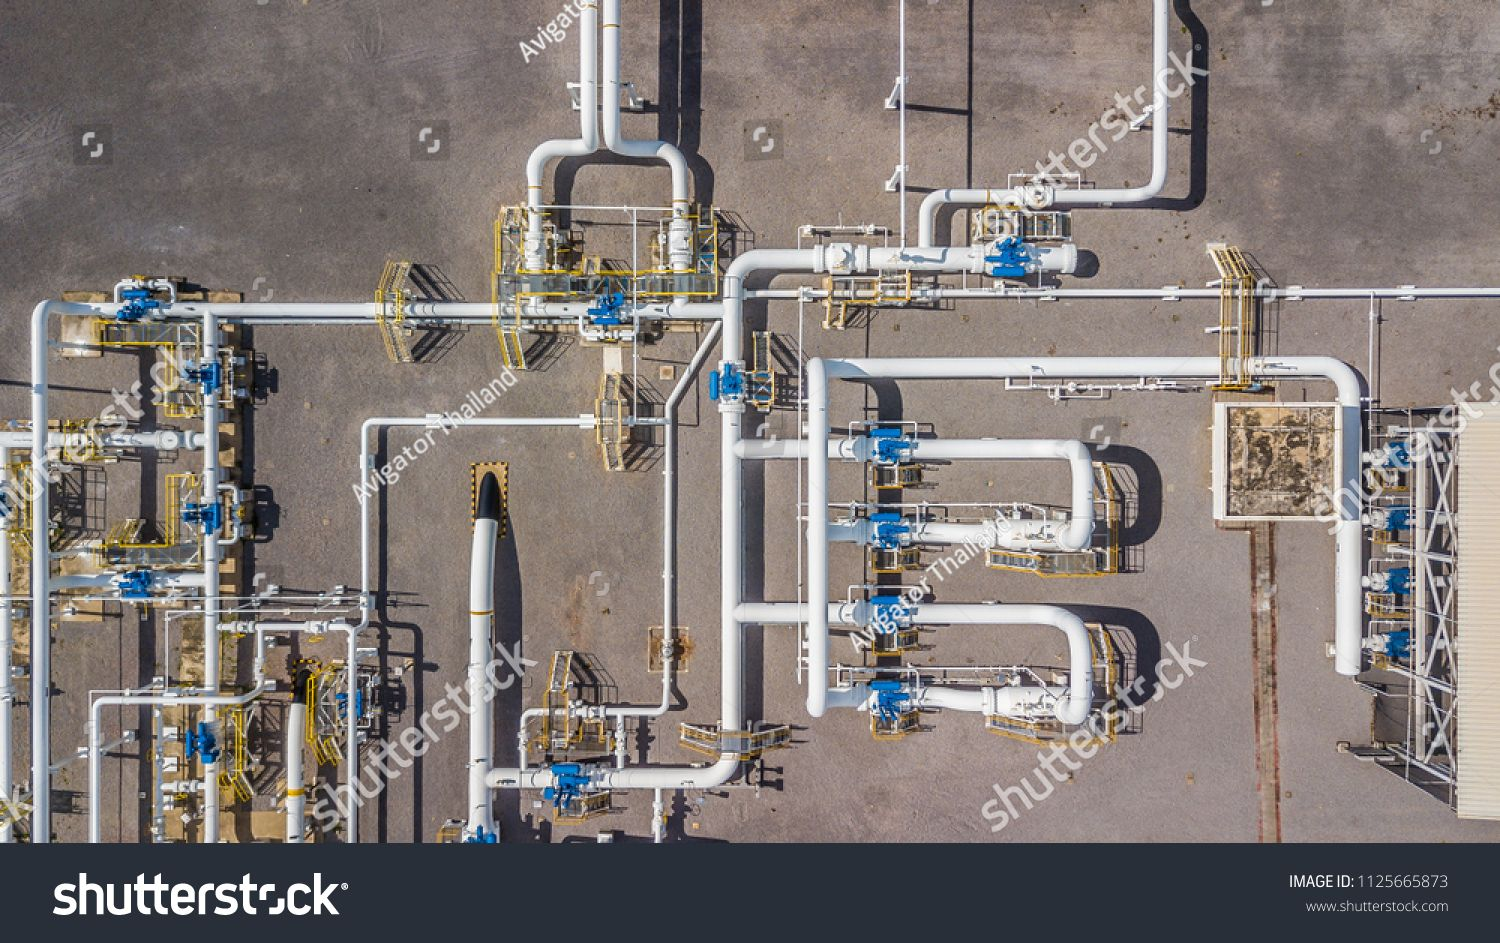 Aerial Top View Natural Gas Pipeline Gas Industry Gas Transport System Stop Valves And Appliances For Gas Pumping Station Gas Pipeline Gas Industry Aerial